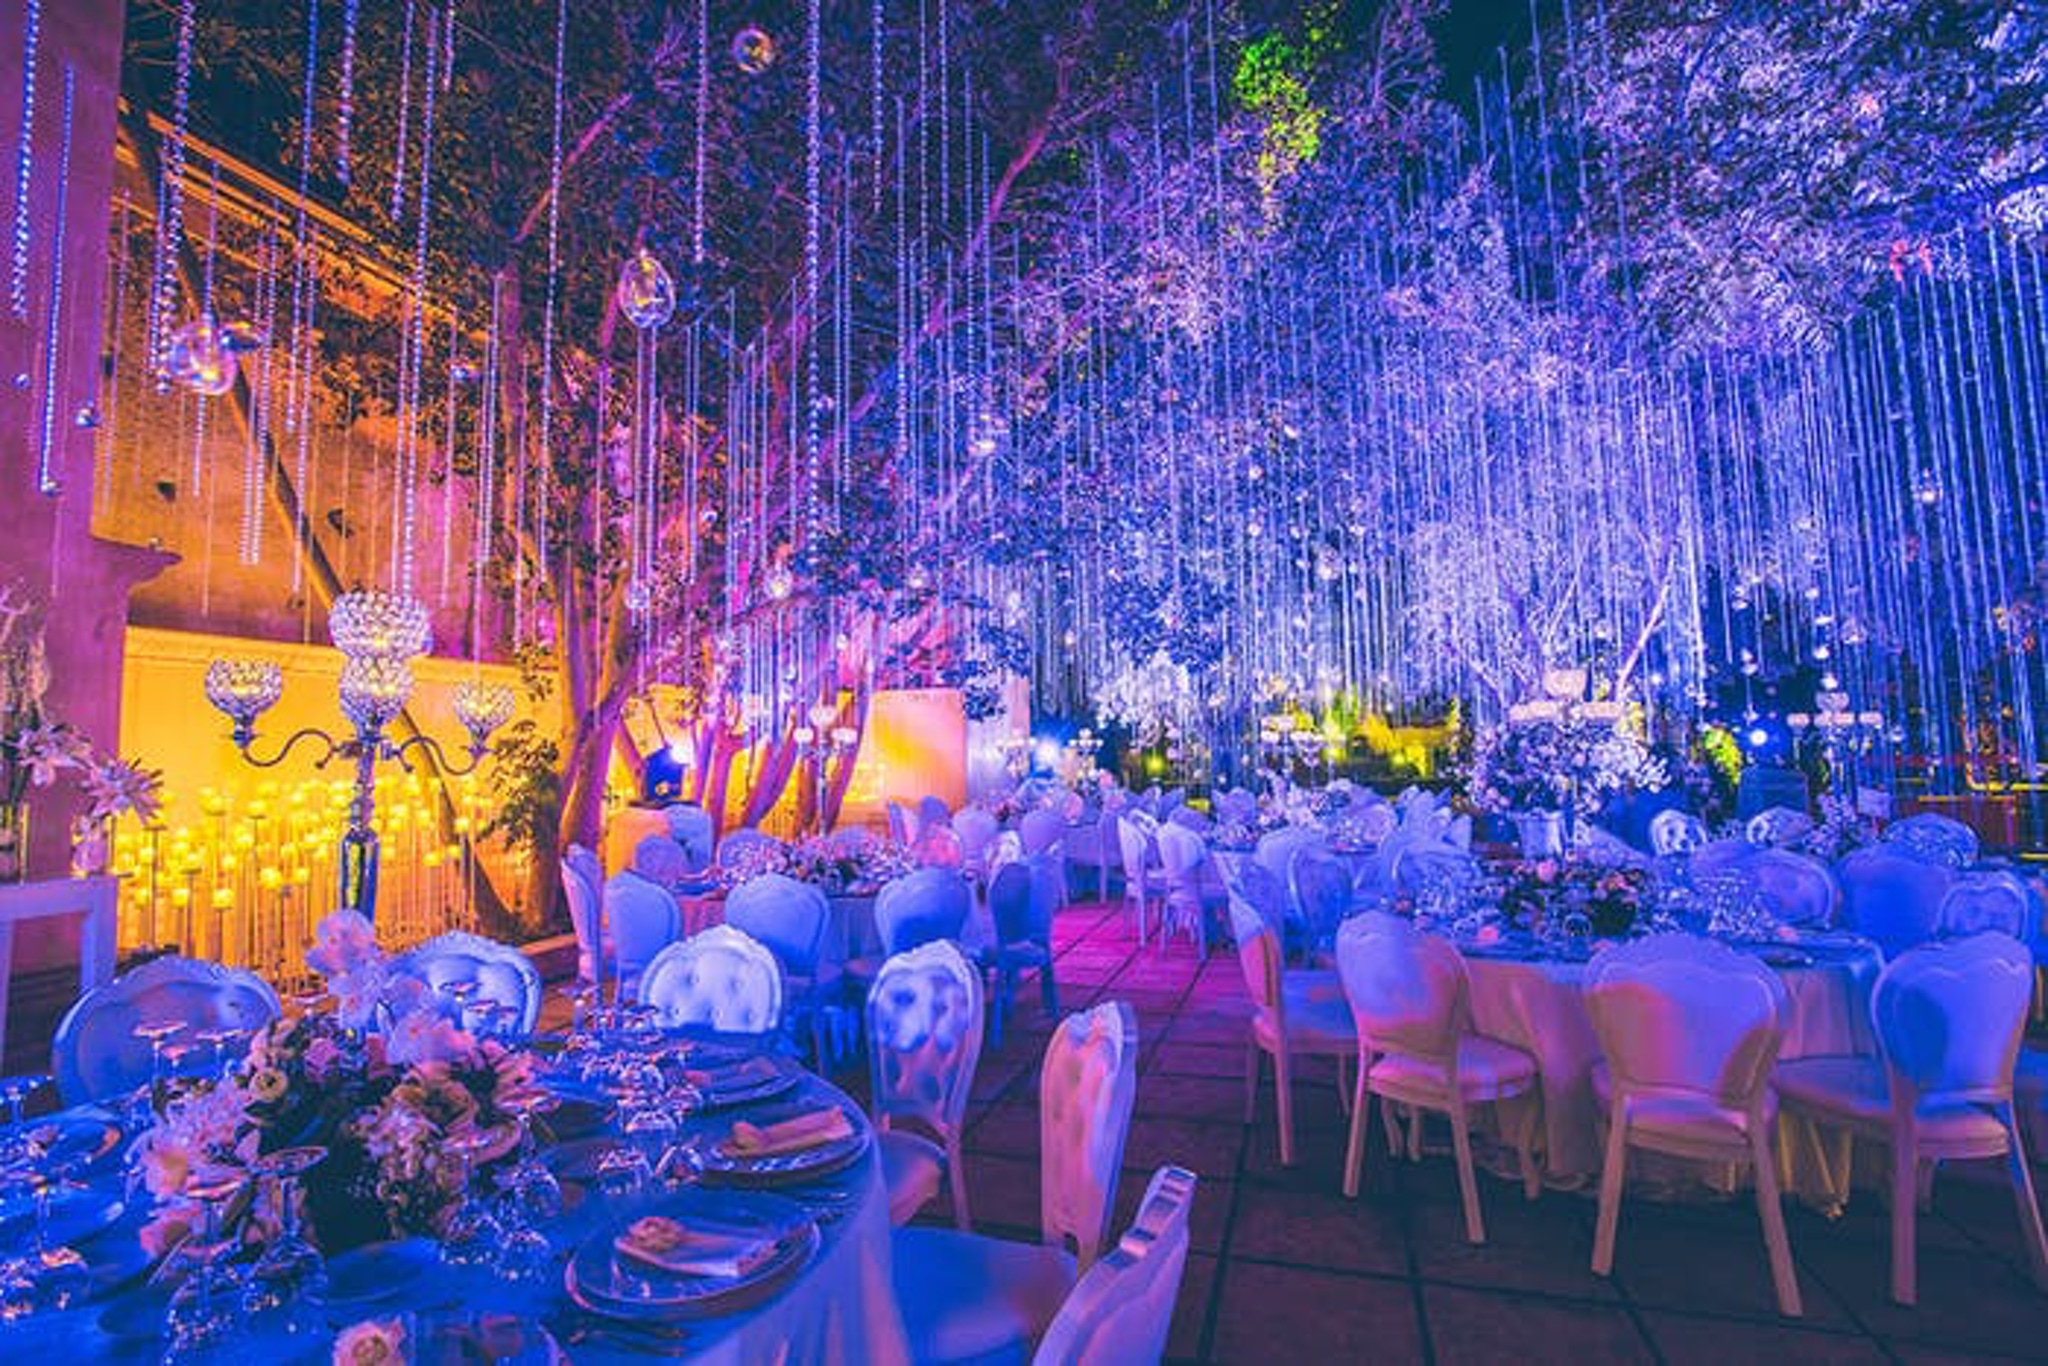 Wedding with crystal deco, neon blue lighting, and Morrocan touches